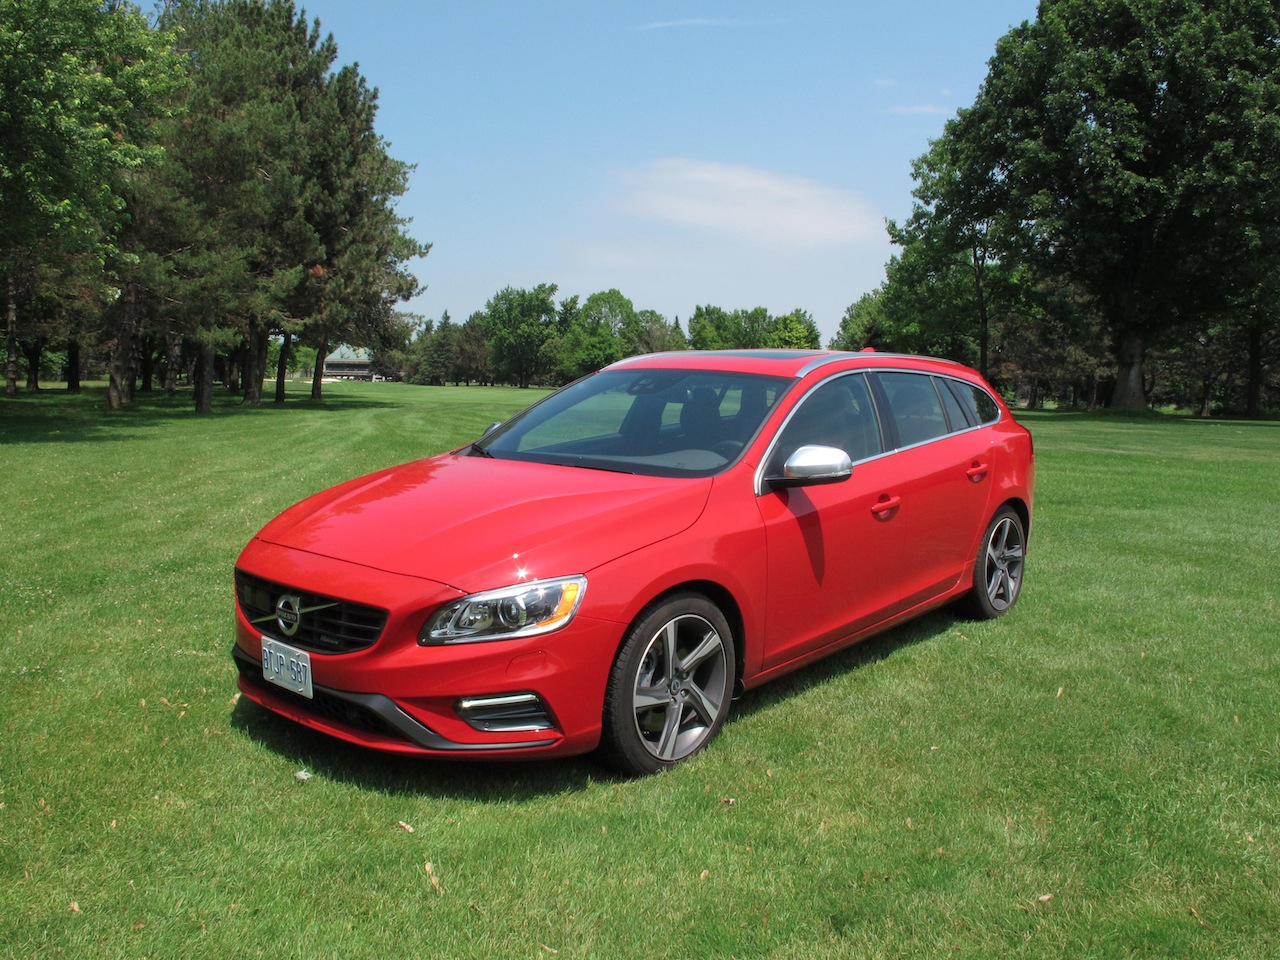 2015 volvo v60 t6 r design photoshoot cars photos test drives and reviews canadian auto. Black Bedroom Furniture Sets. Home Design Ideas